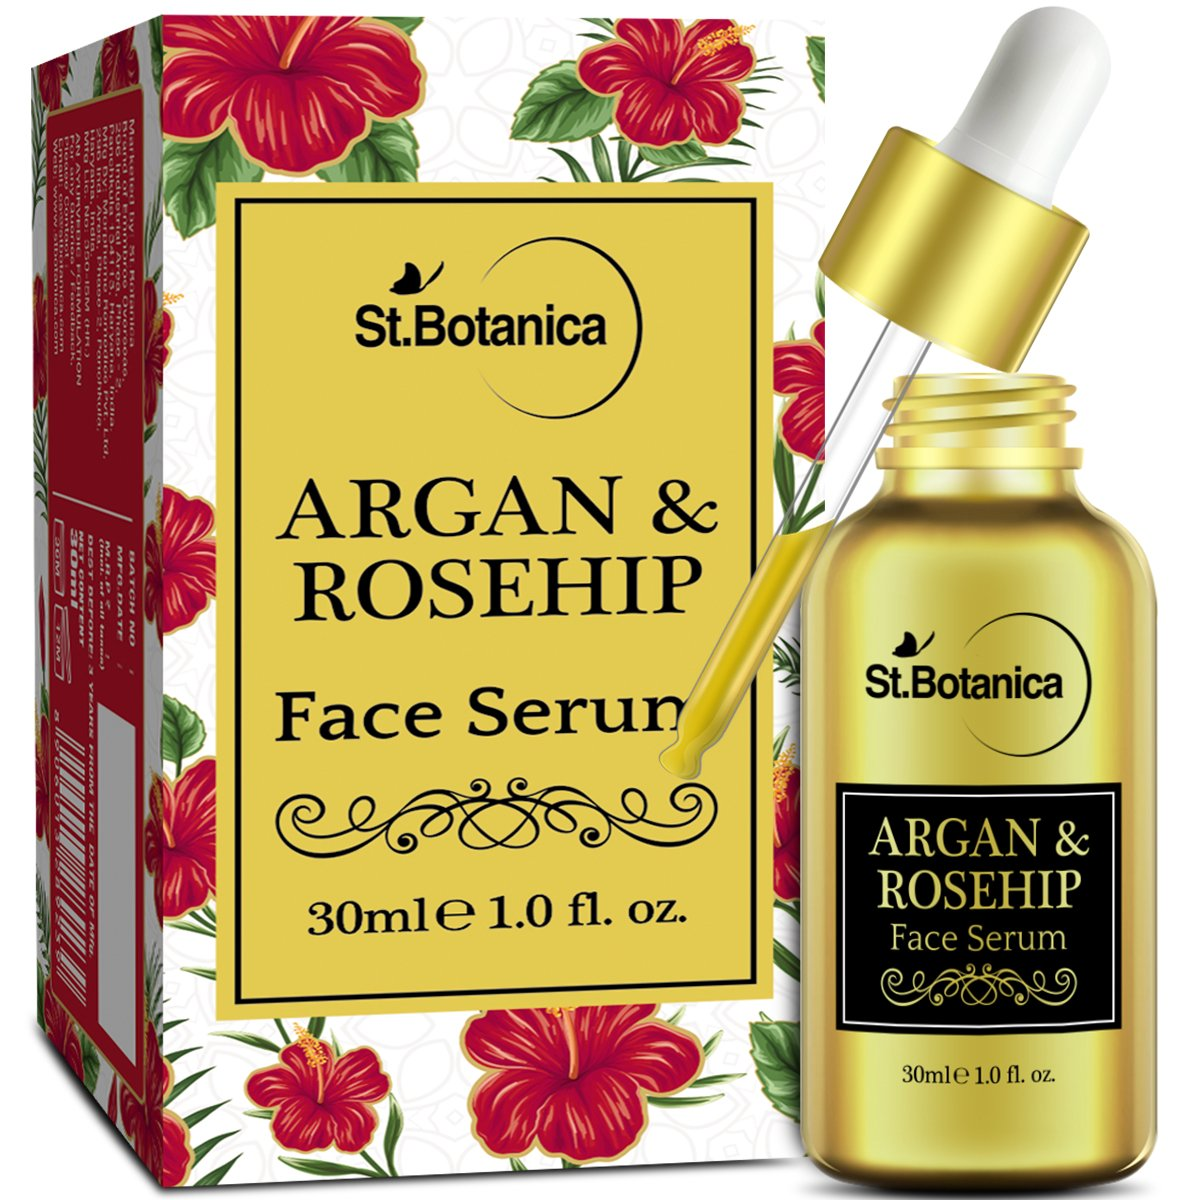 Stbotanica Argan & Rosehip Face Serum - 30Ml - For Anti